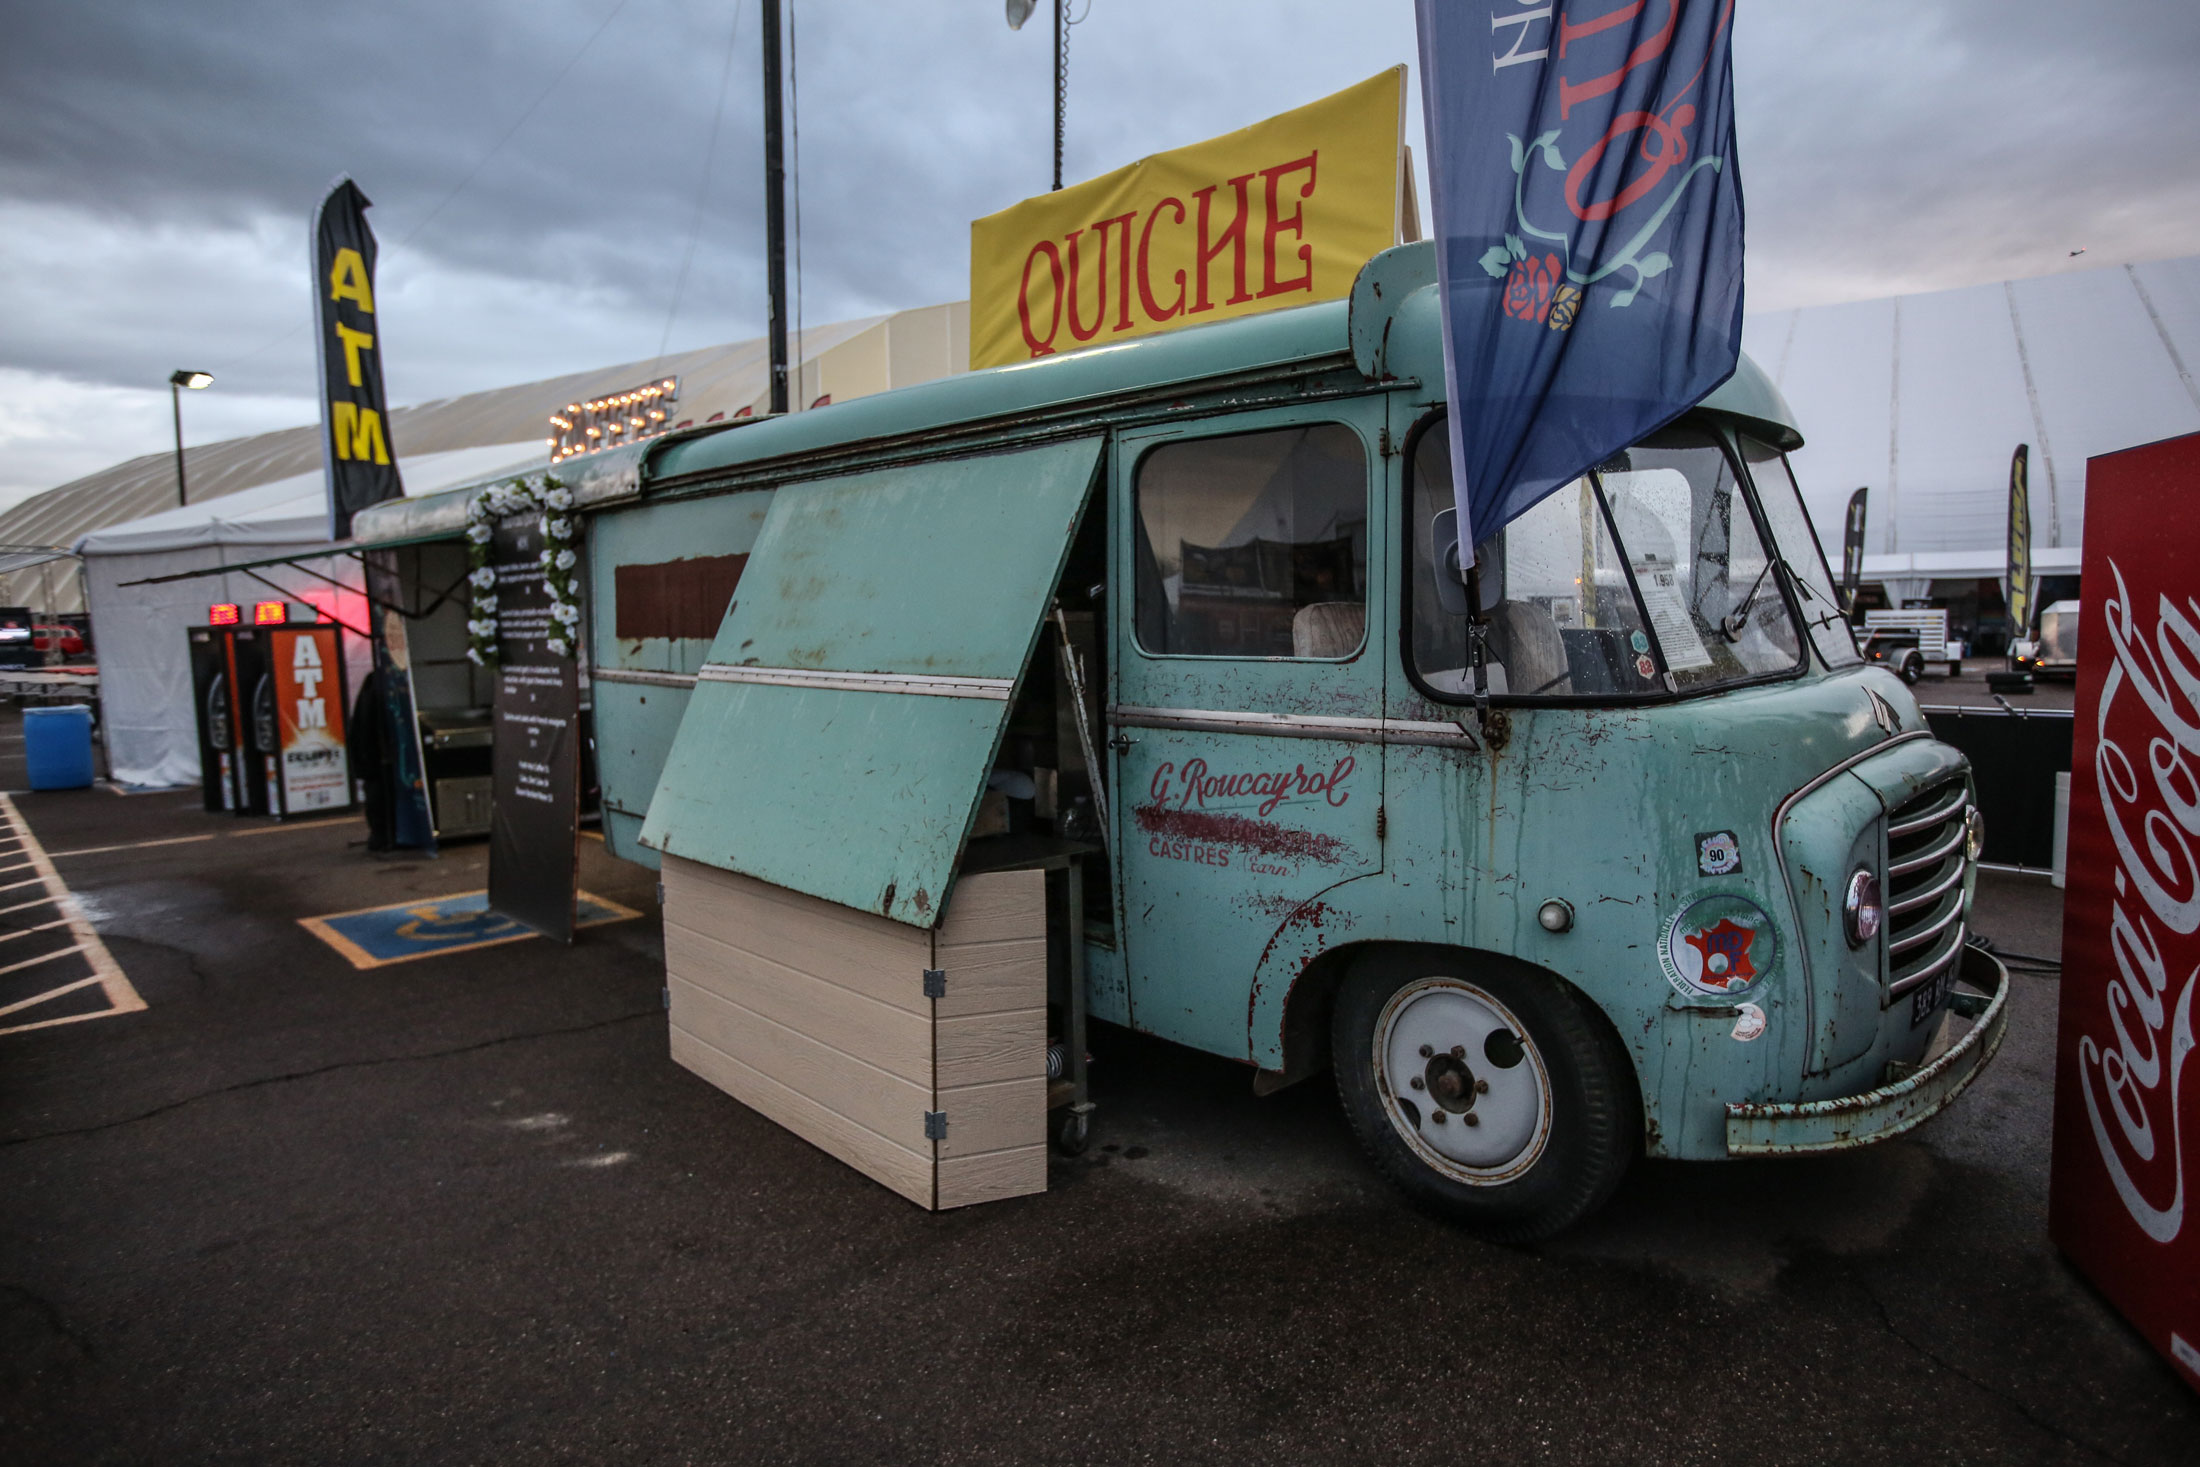 Citroën food truck